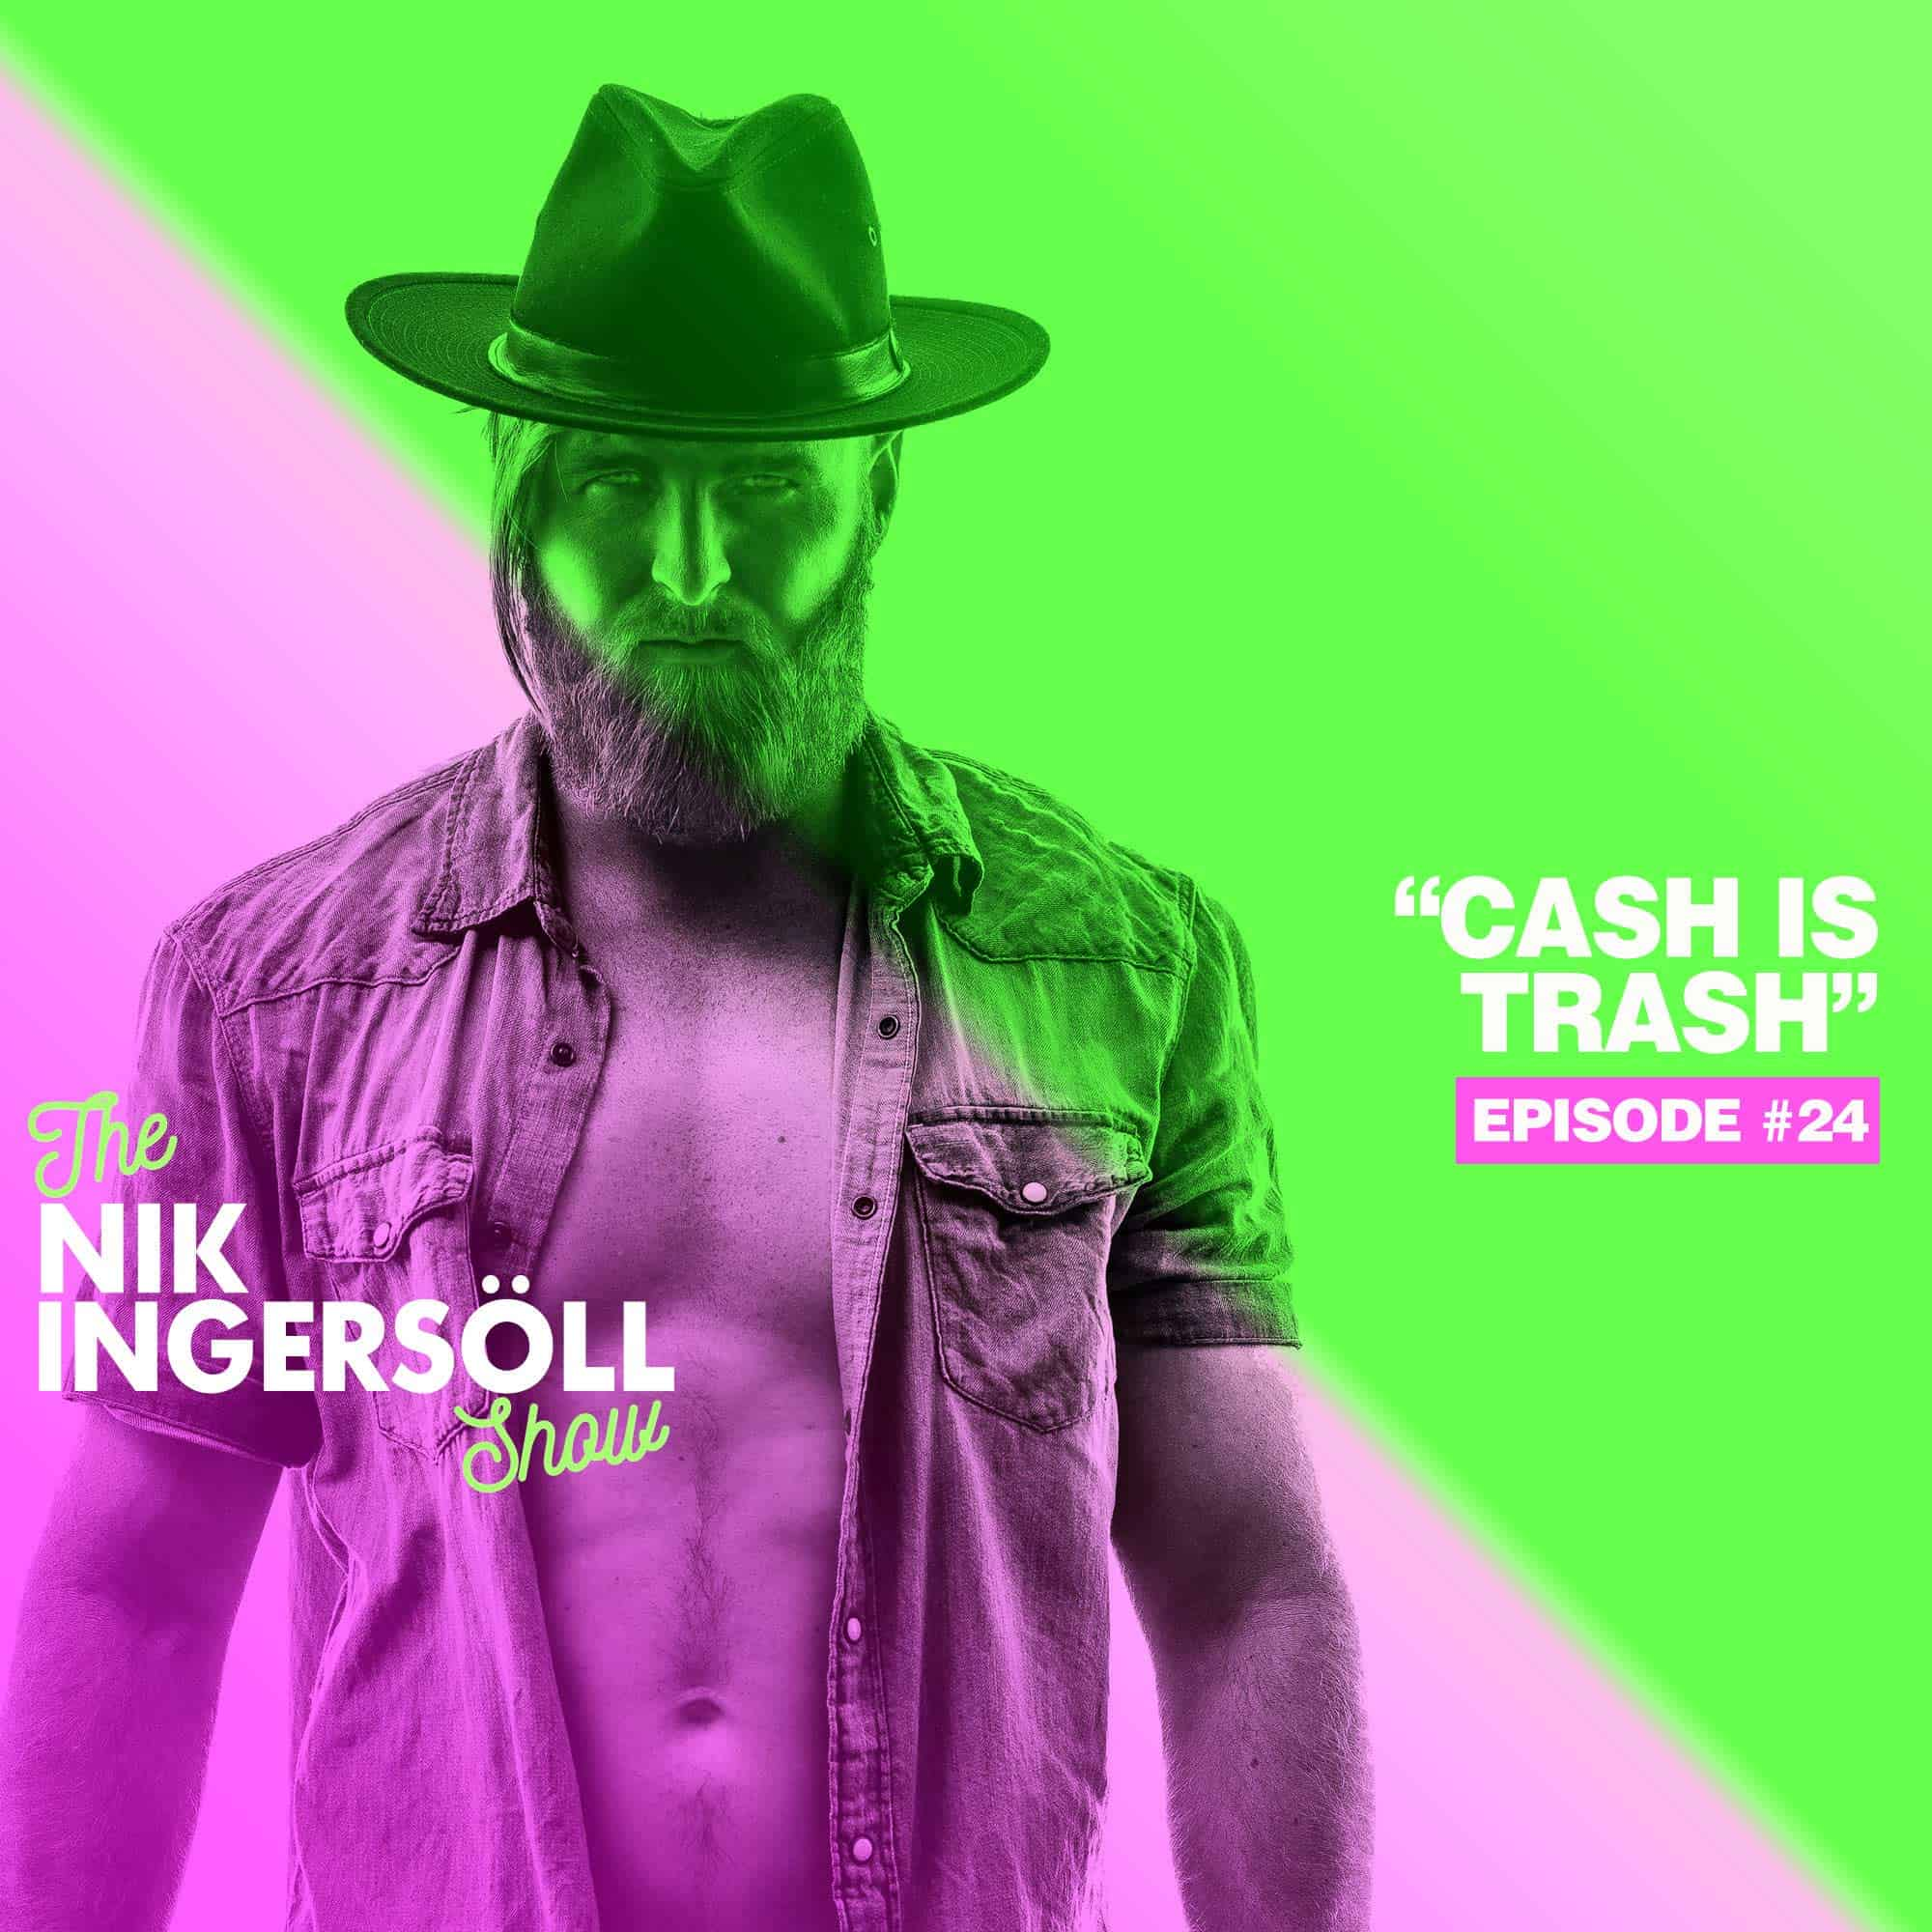 #24: 2020 Market Predictions & Recession – (Podcast) The Nik Ingersoll Show